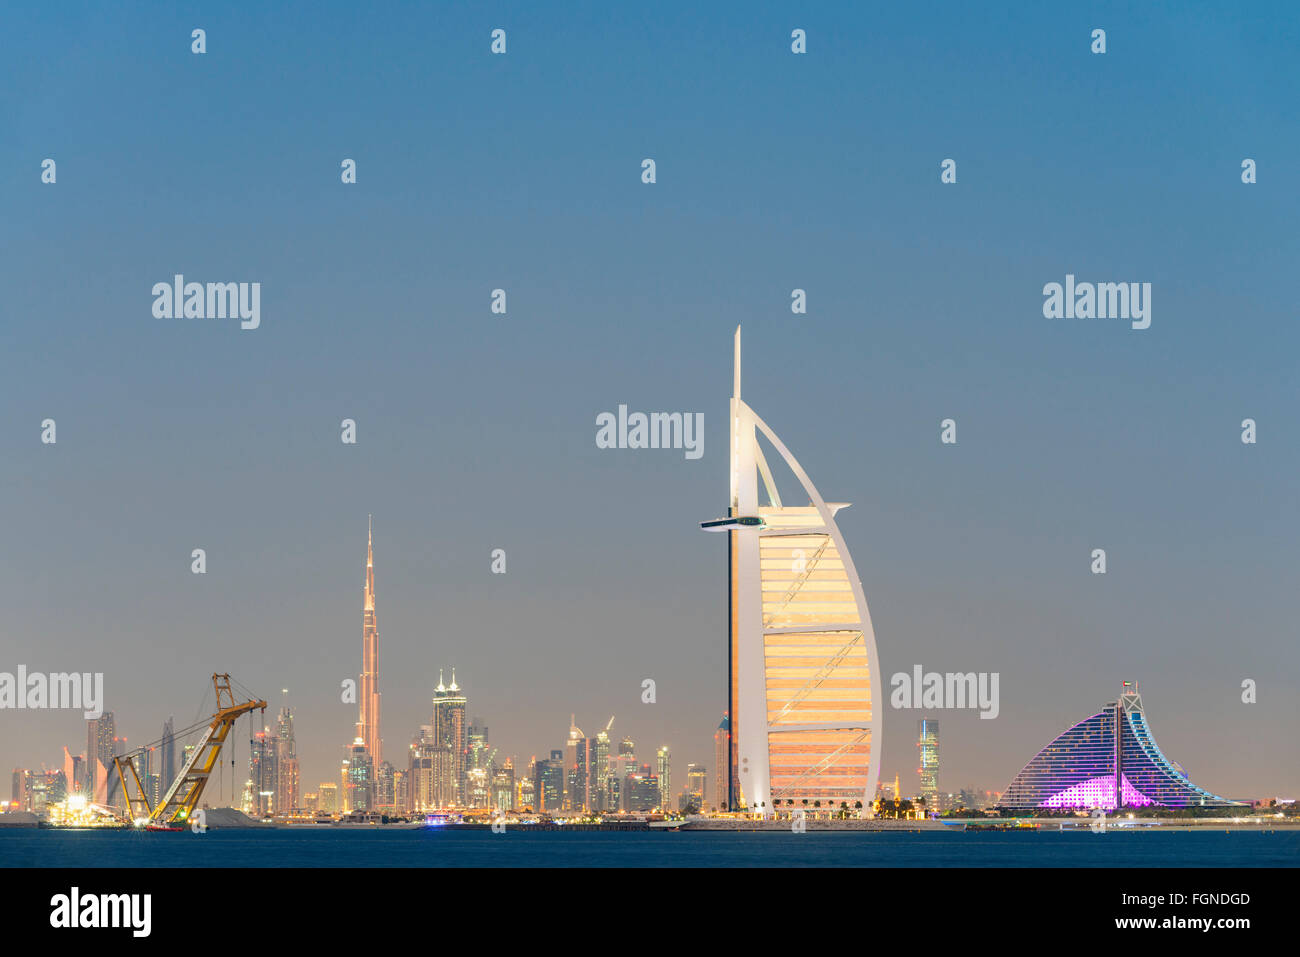 Skyline at night de Dubaï Waterfront avec Burj Al Arab en Émirats Arabes Unis Photo Stock